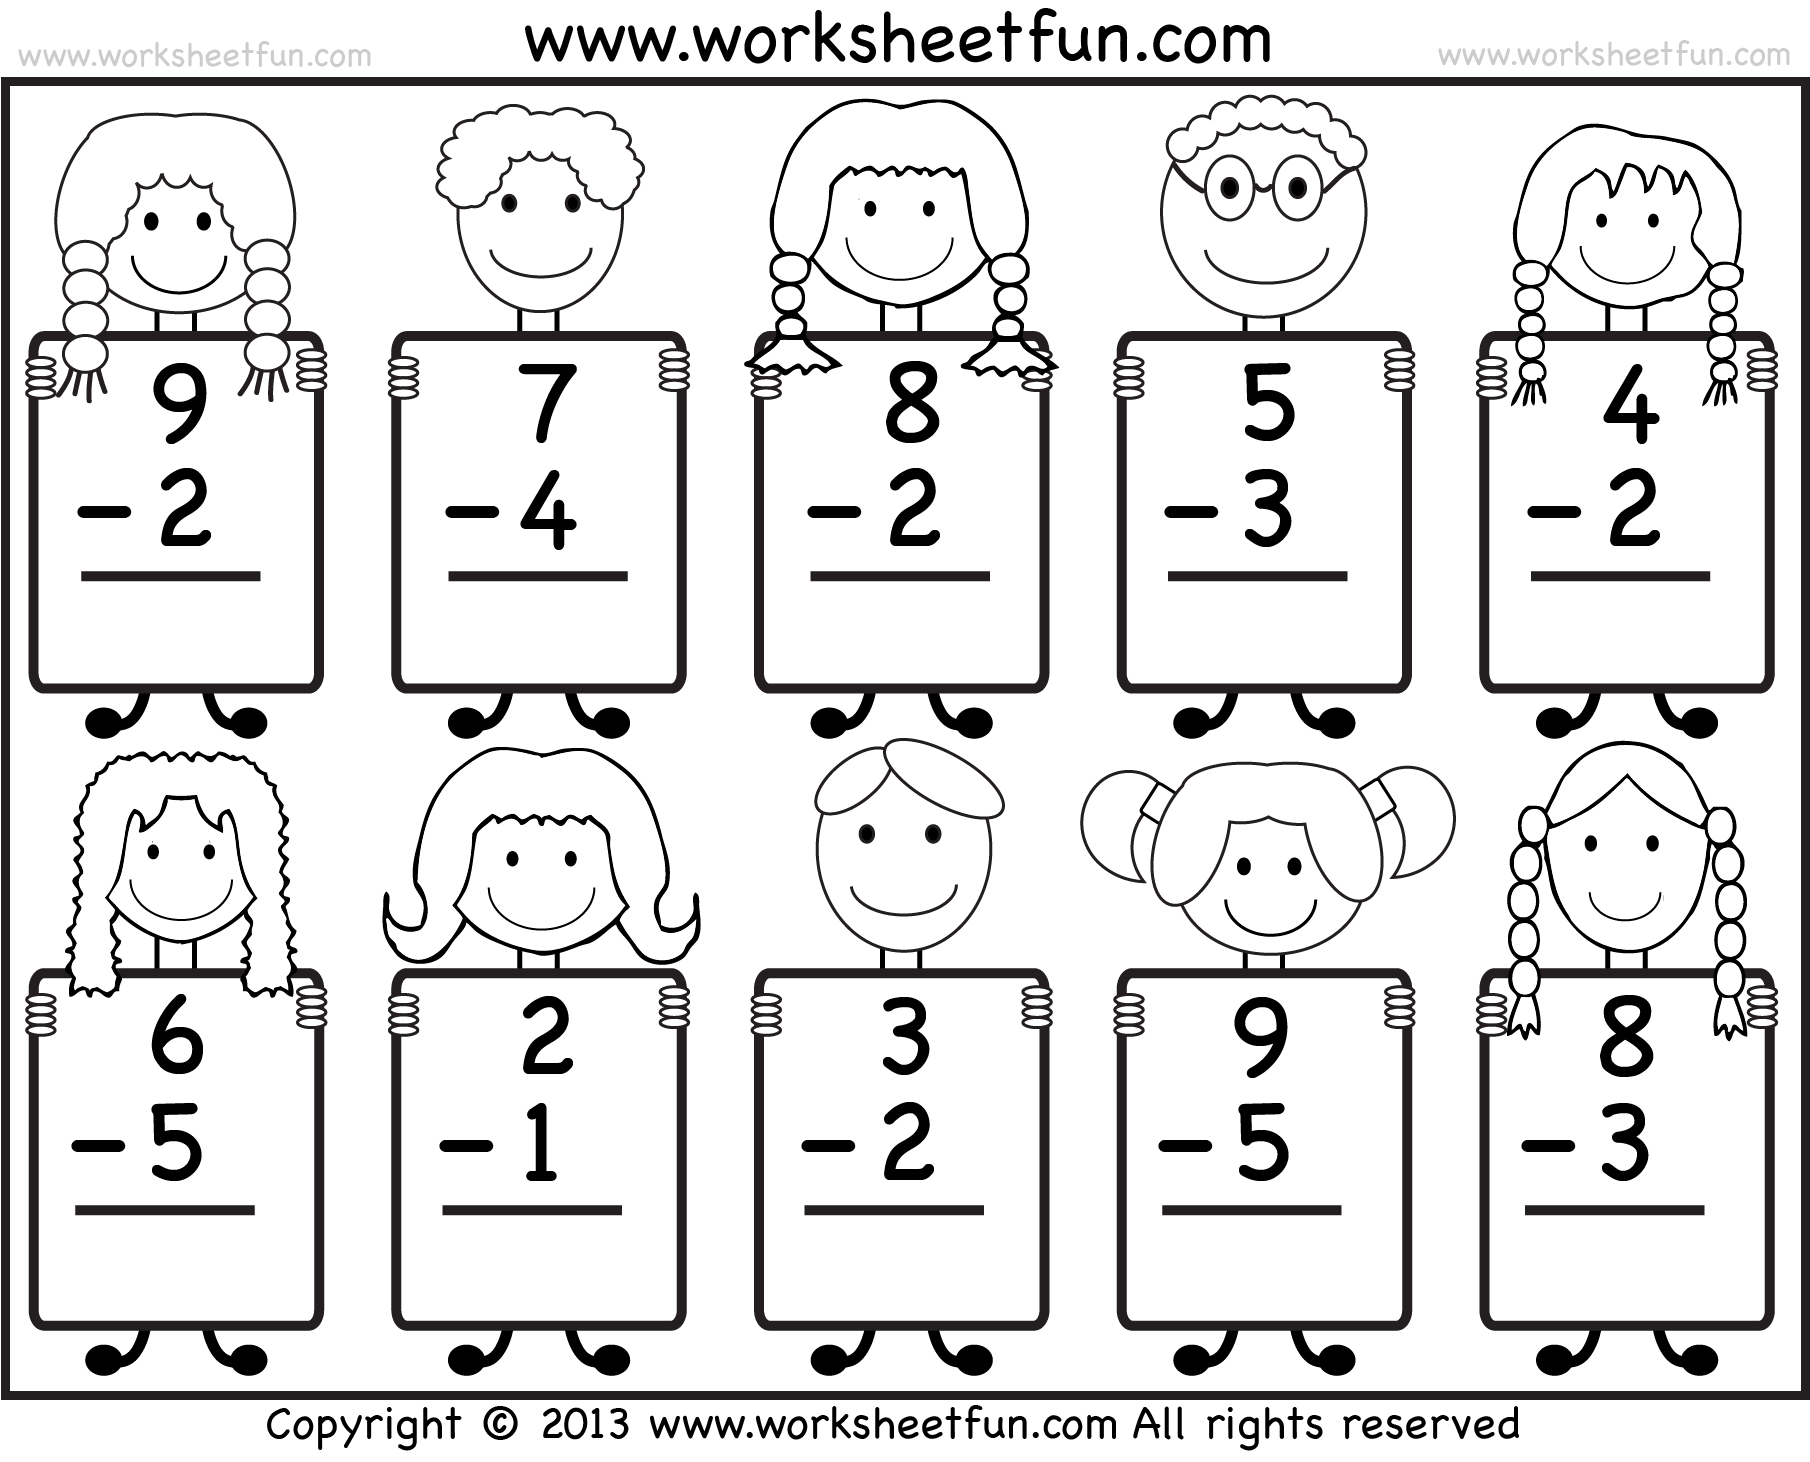 Worksheets Free Printable Math Addition Worksheets beginner subtraction 10 kindergarten worksheets worksheets